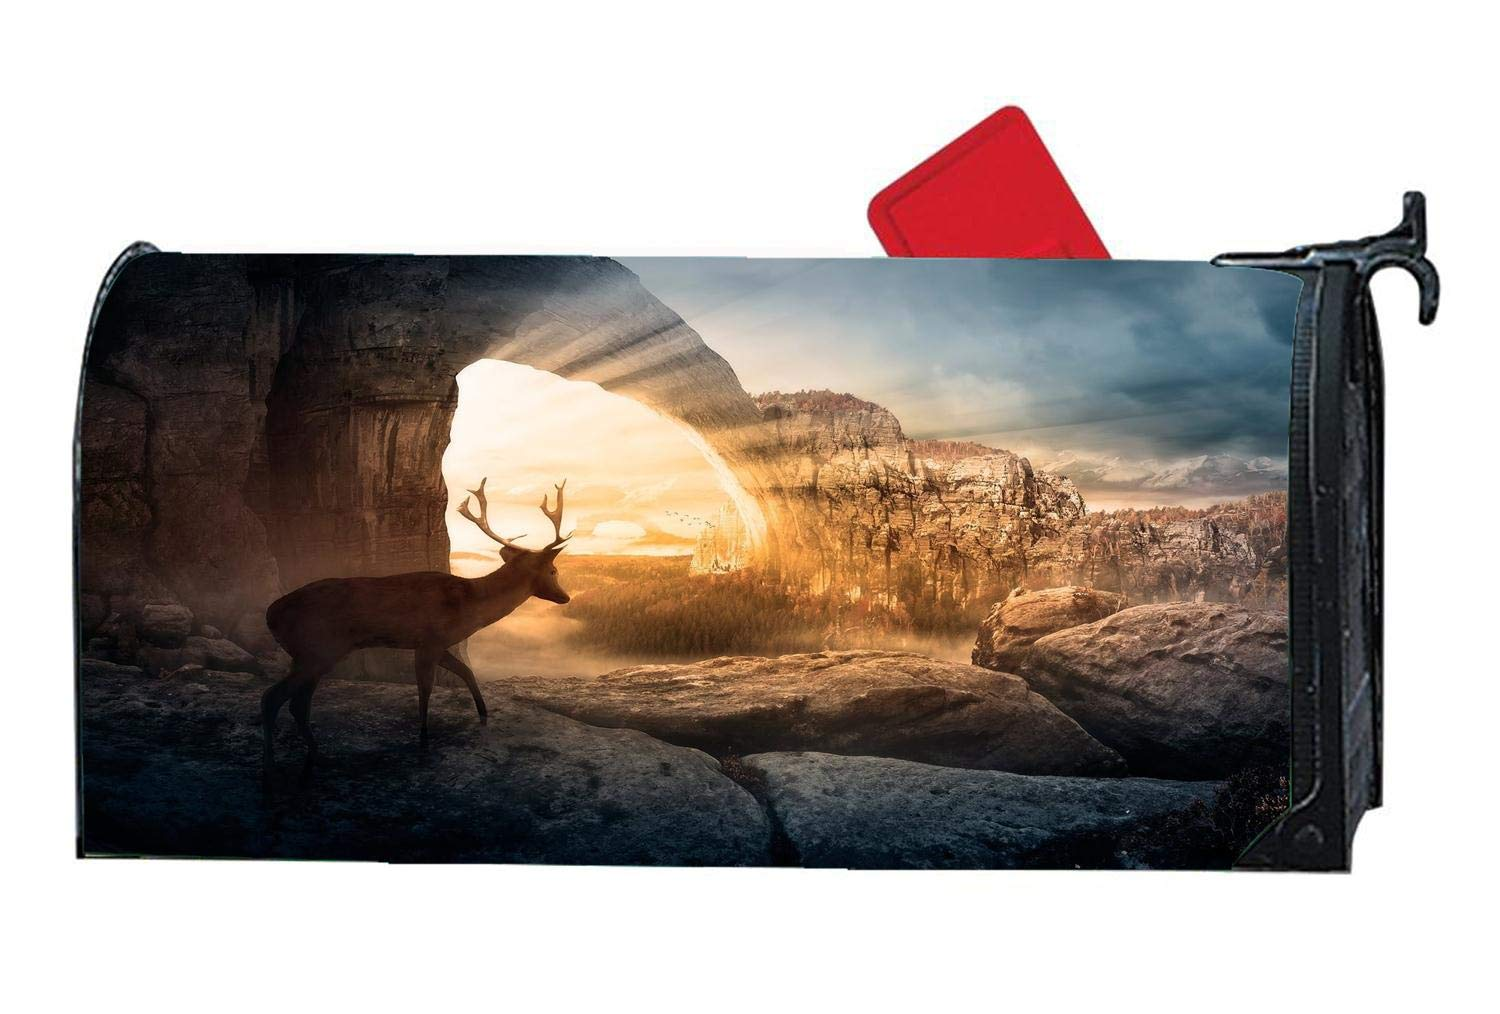 Personalized Decorative Magnetic Mailbox Cover Vinyl Standard Mailbox Wrap with Reindeer Deer Design 6.5'' x 19'' - Autumn Deer Hunting Sunlight